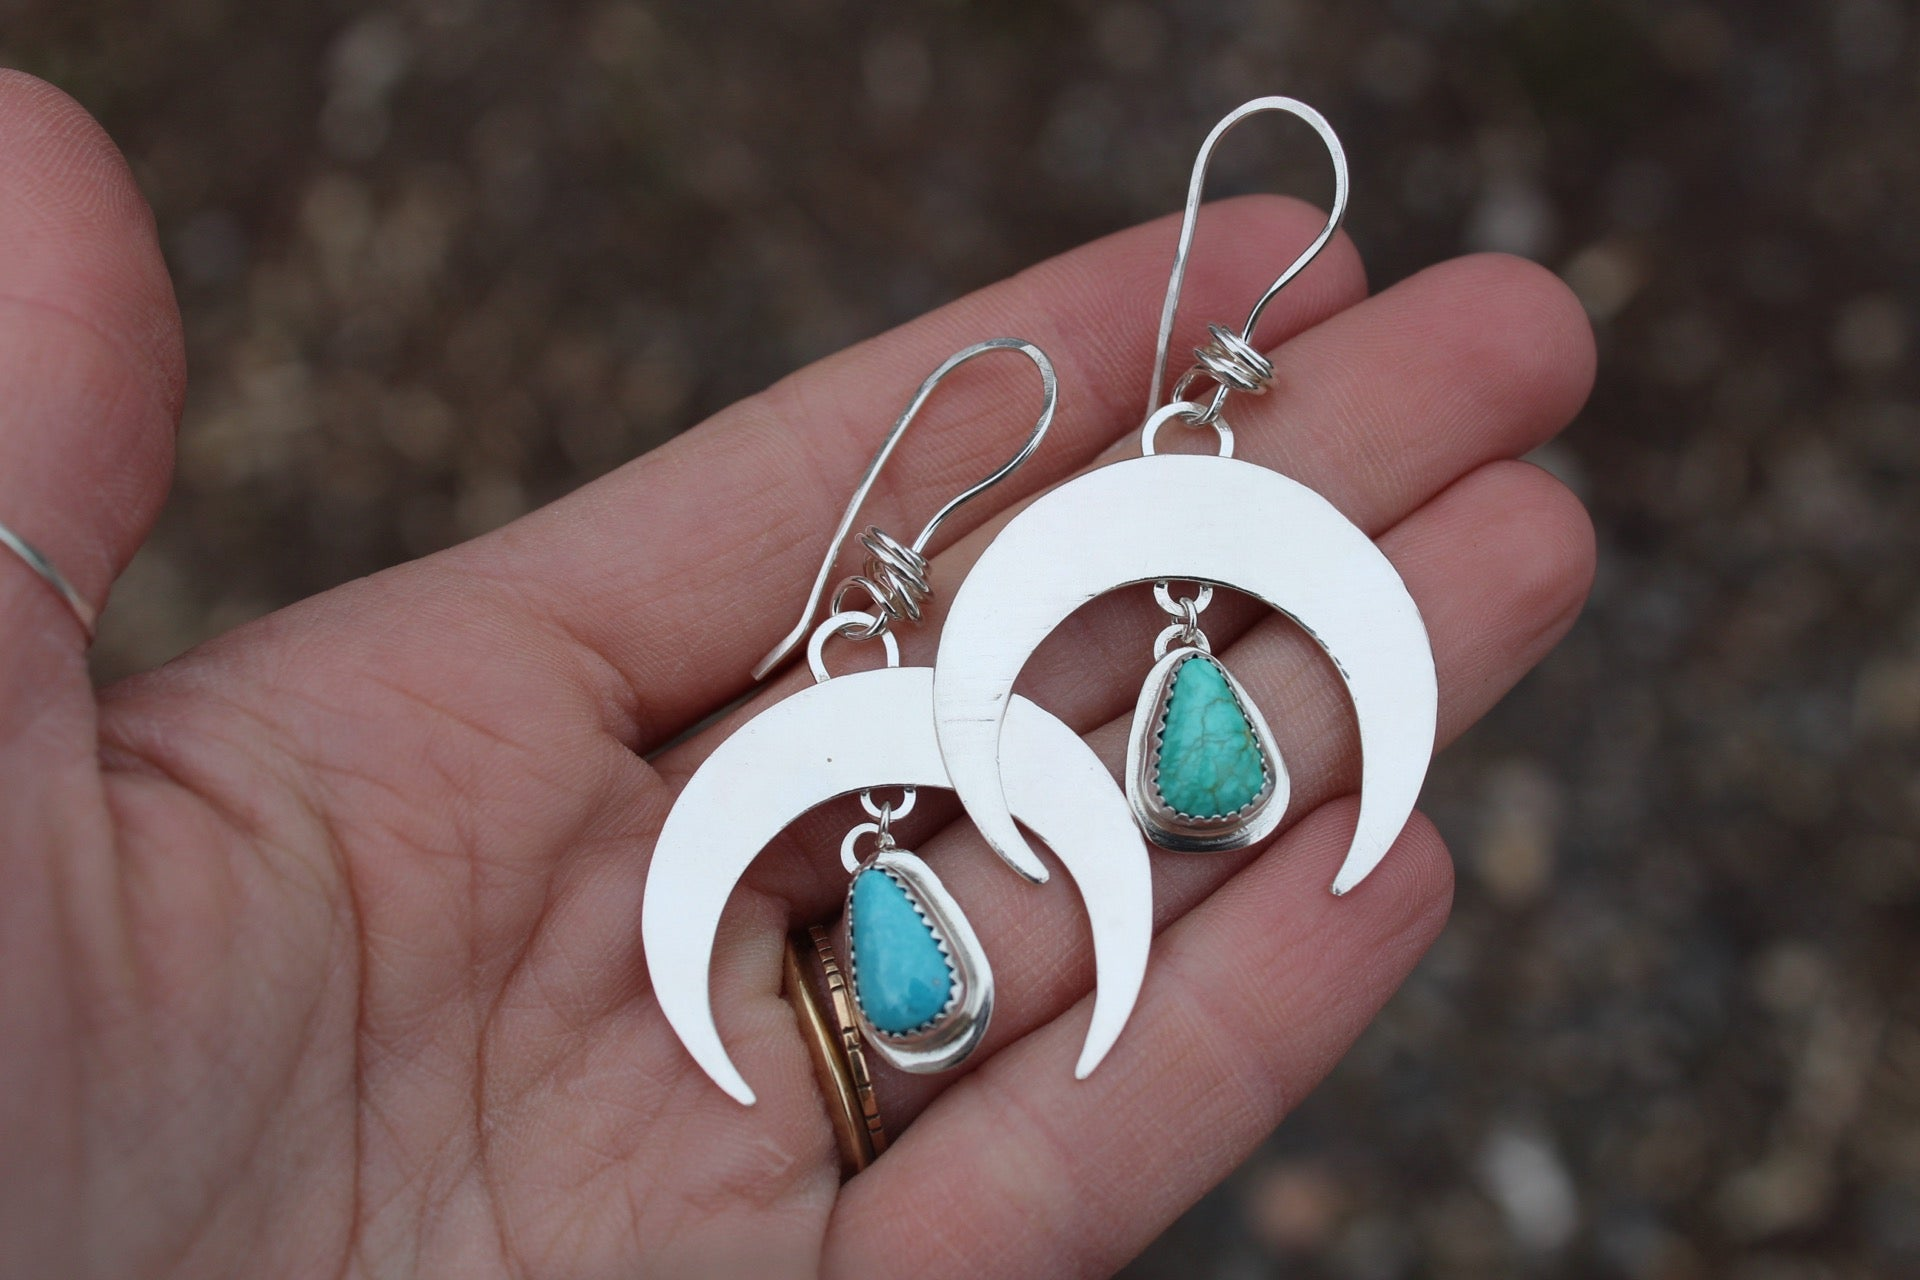 Crescent Moon Earrings 1- Teardrop Roystons